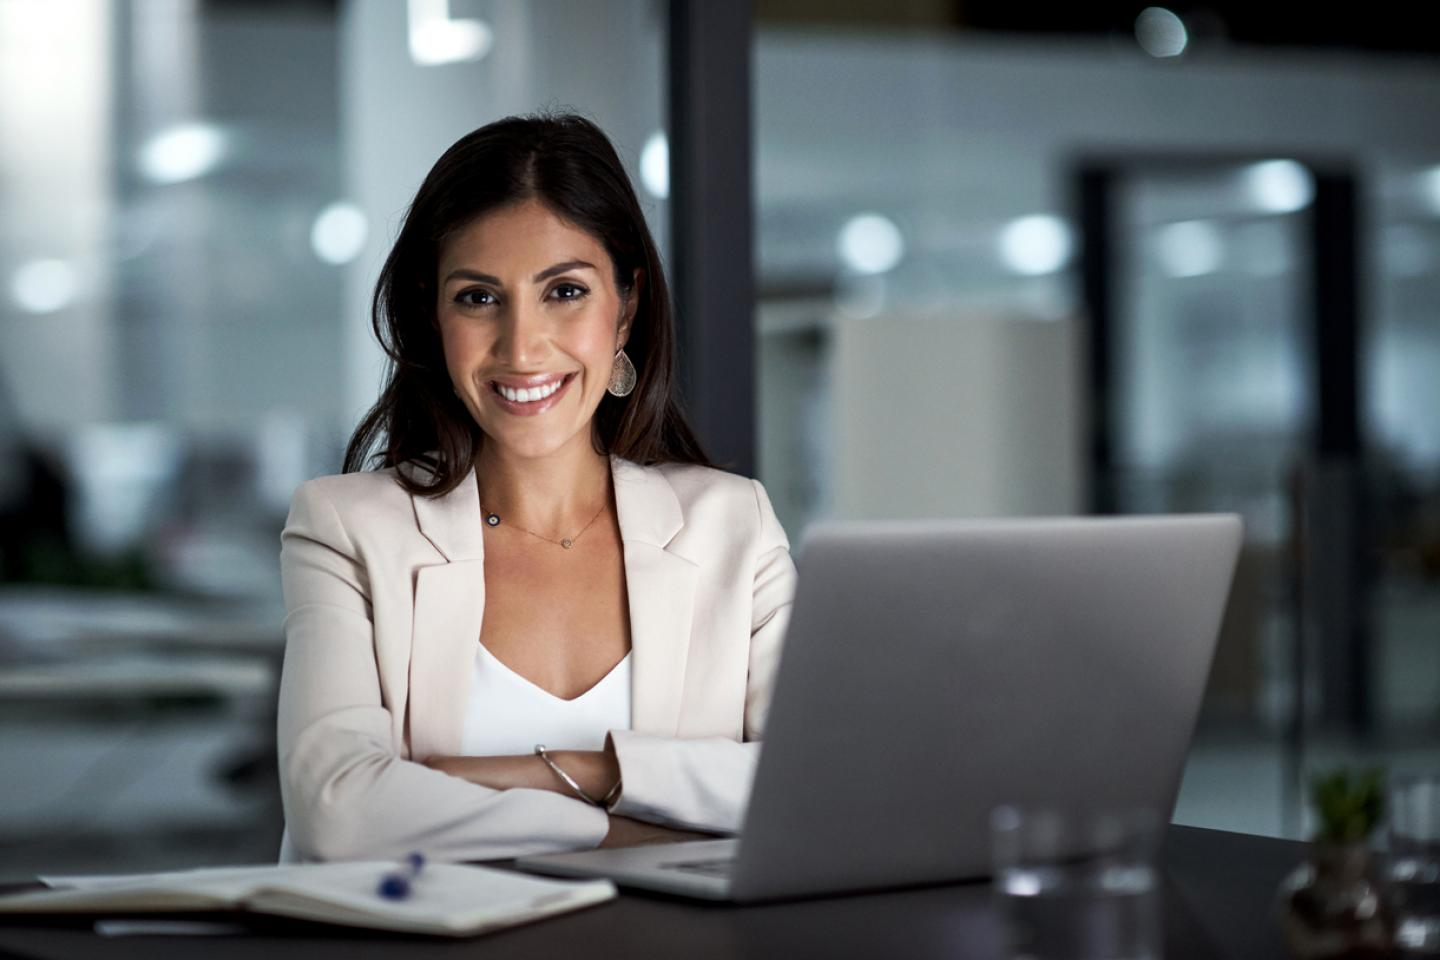 Smiling Business women sitting at desk in front of laptop